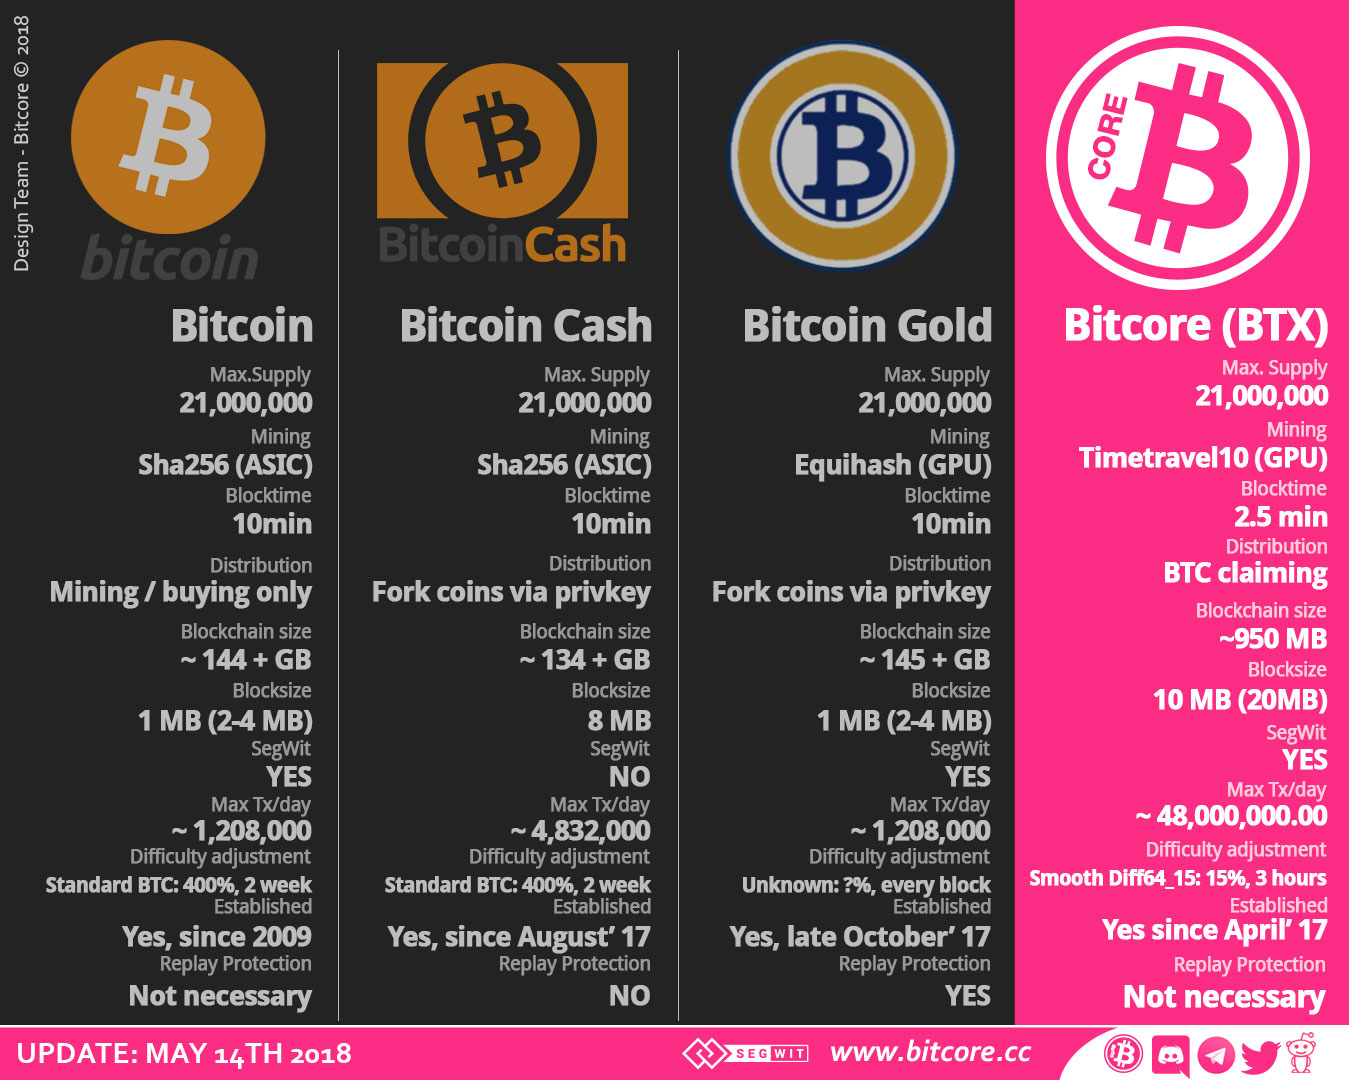 Bitcoin X (BTX) Price to USD - Live Value Today | Coinranking